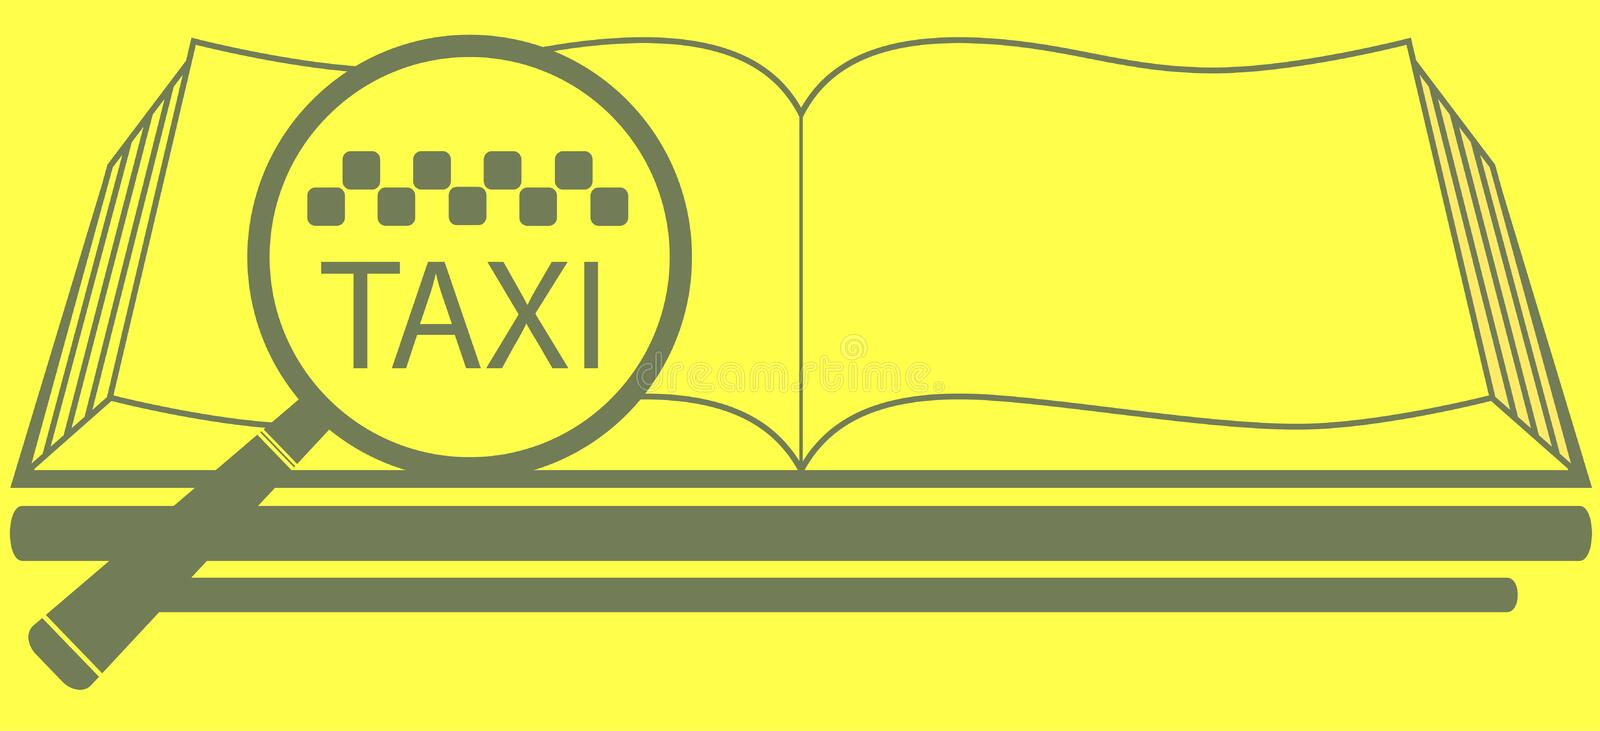 Book with magnifier and taxi symbol royalty free illustration